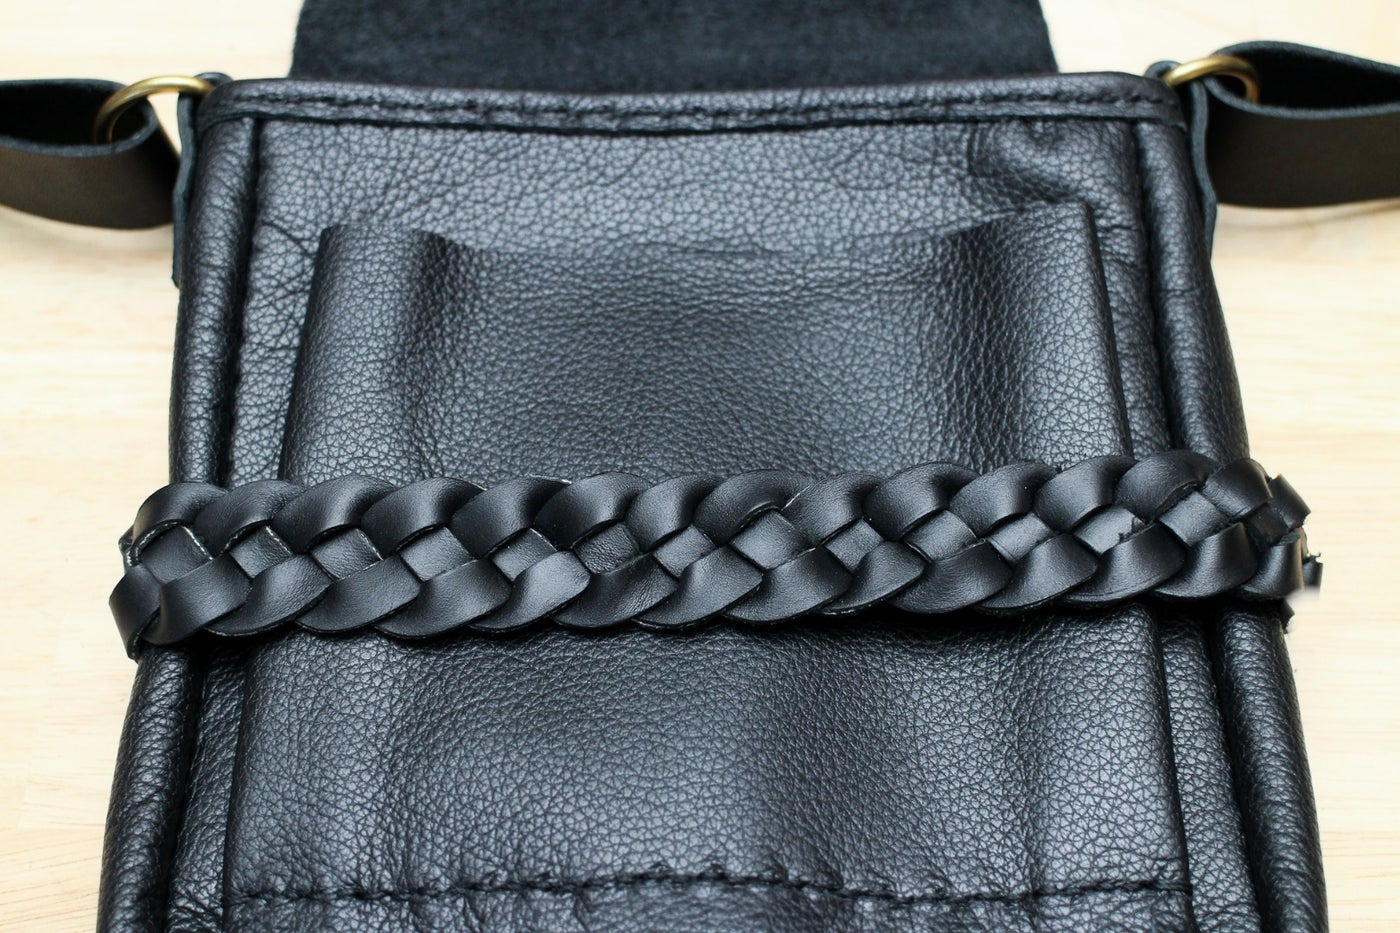 Make a Braided Cross Strap for Your Bag